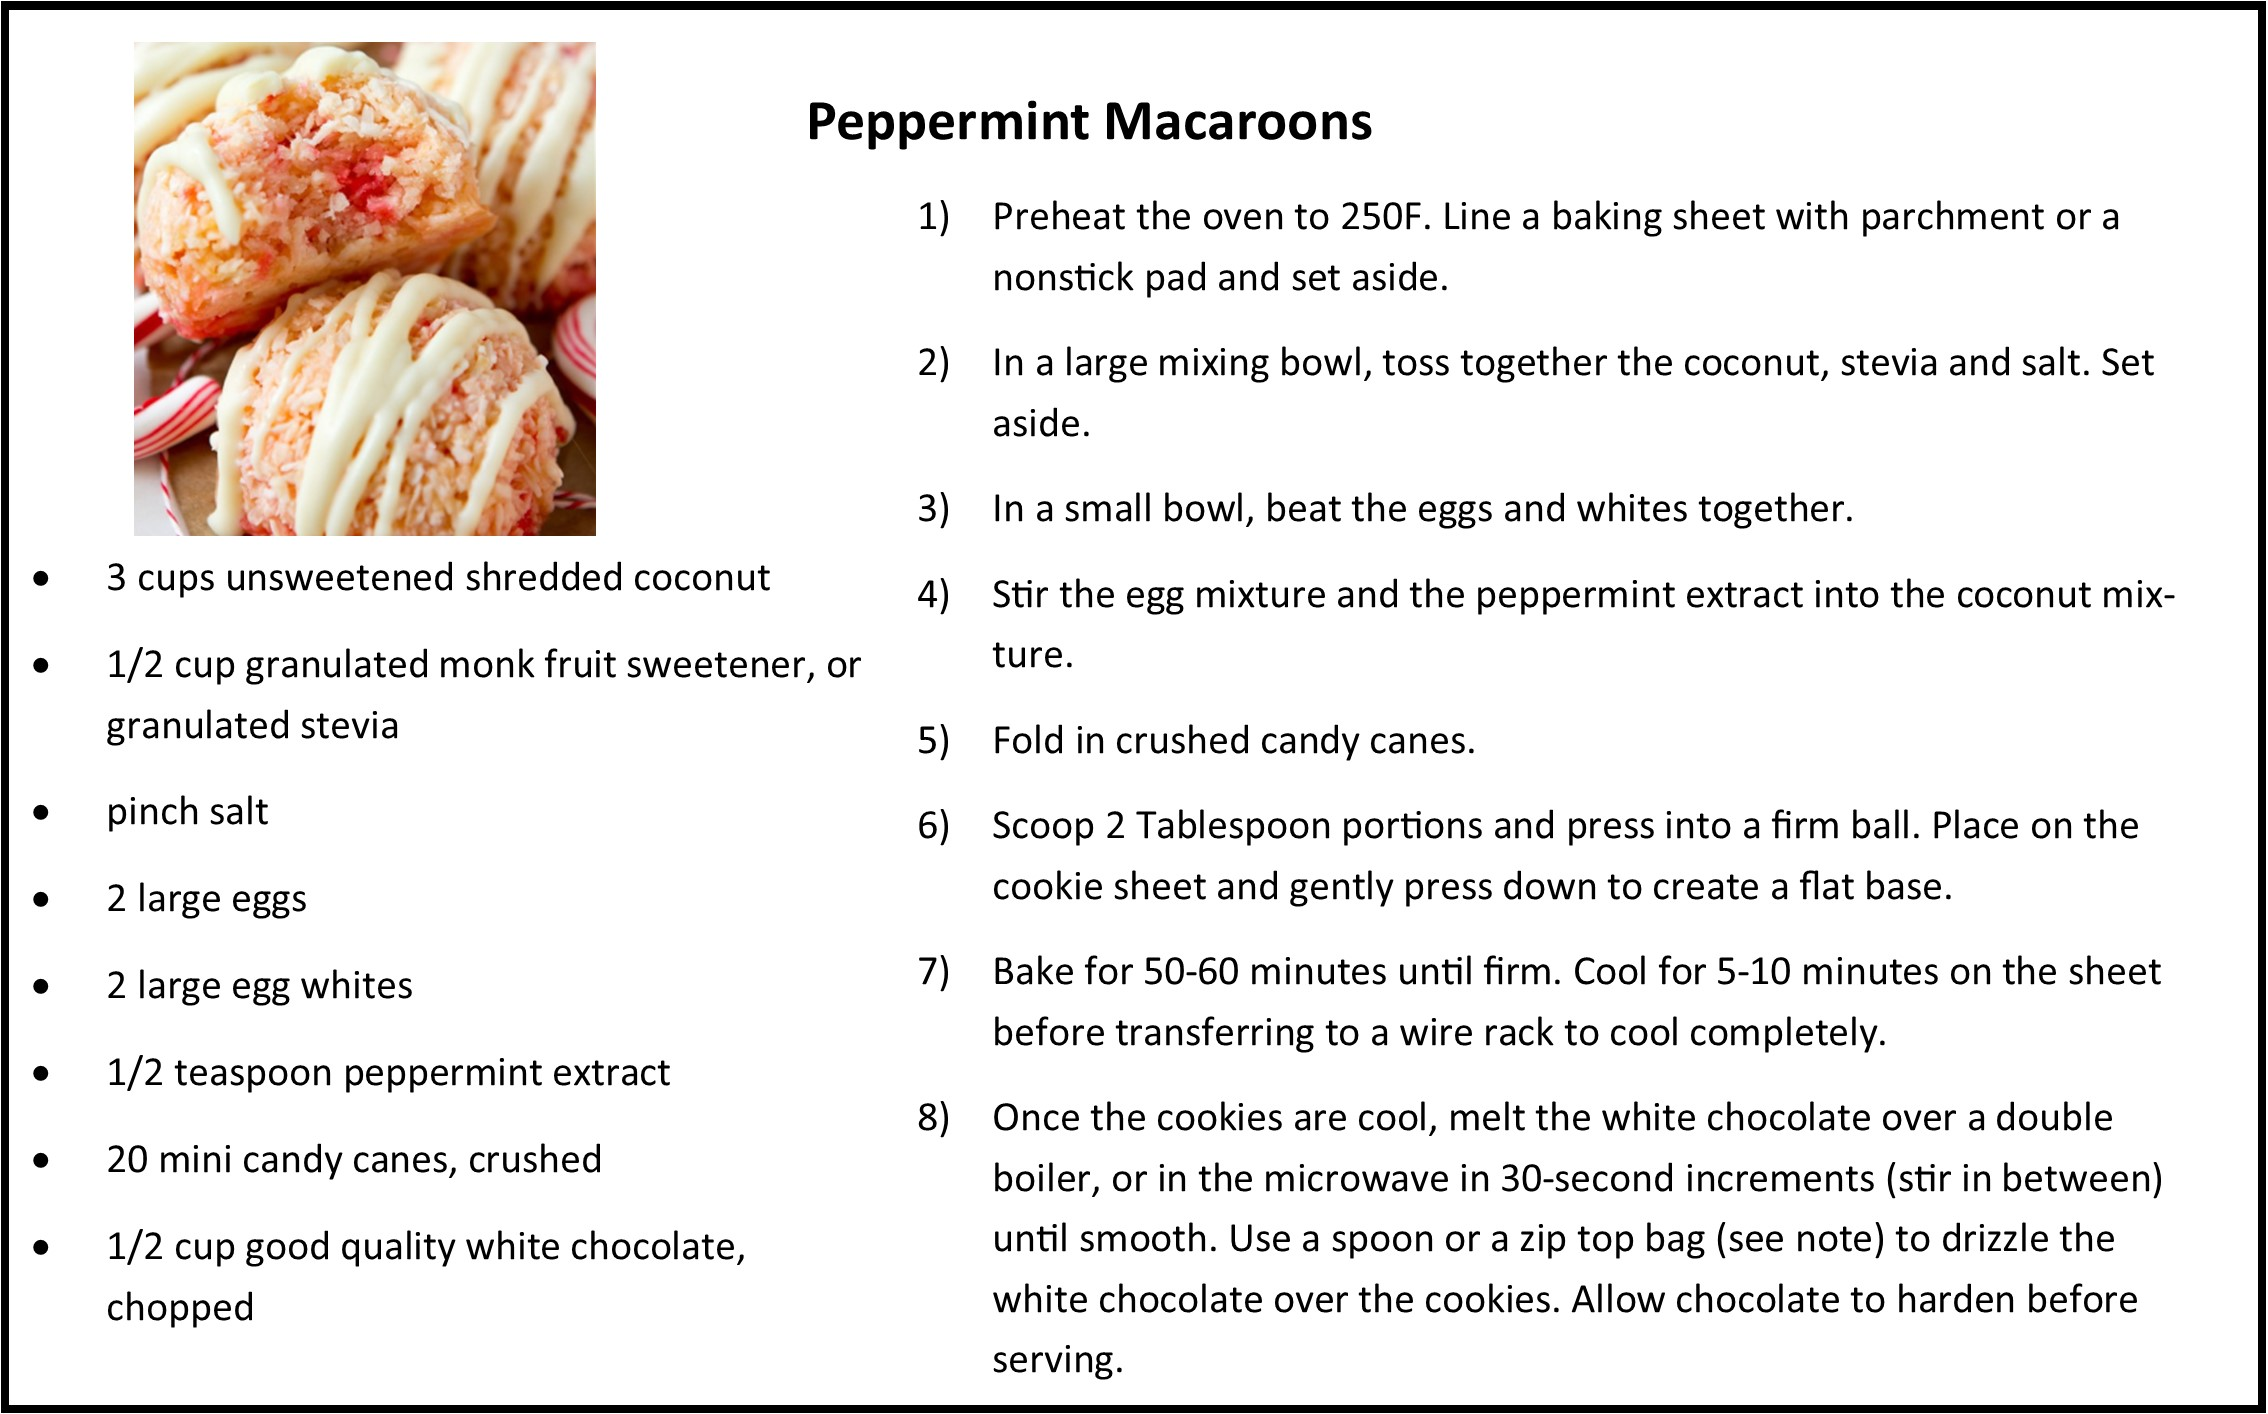 Peppermint Macaroons